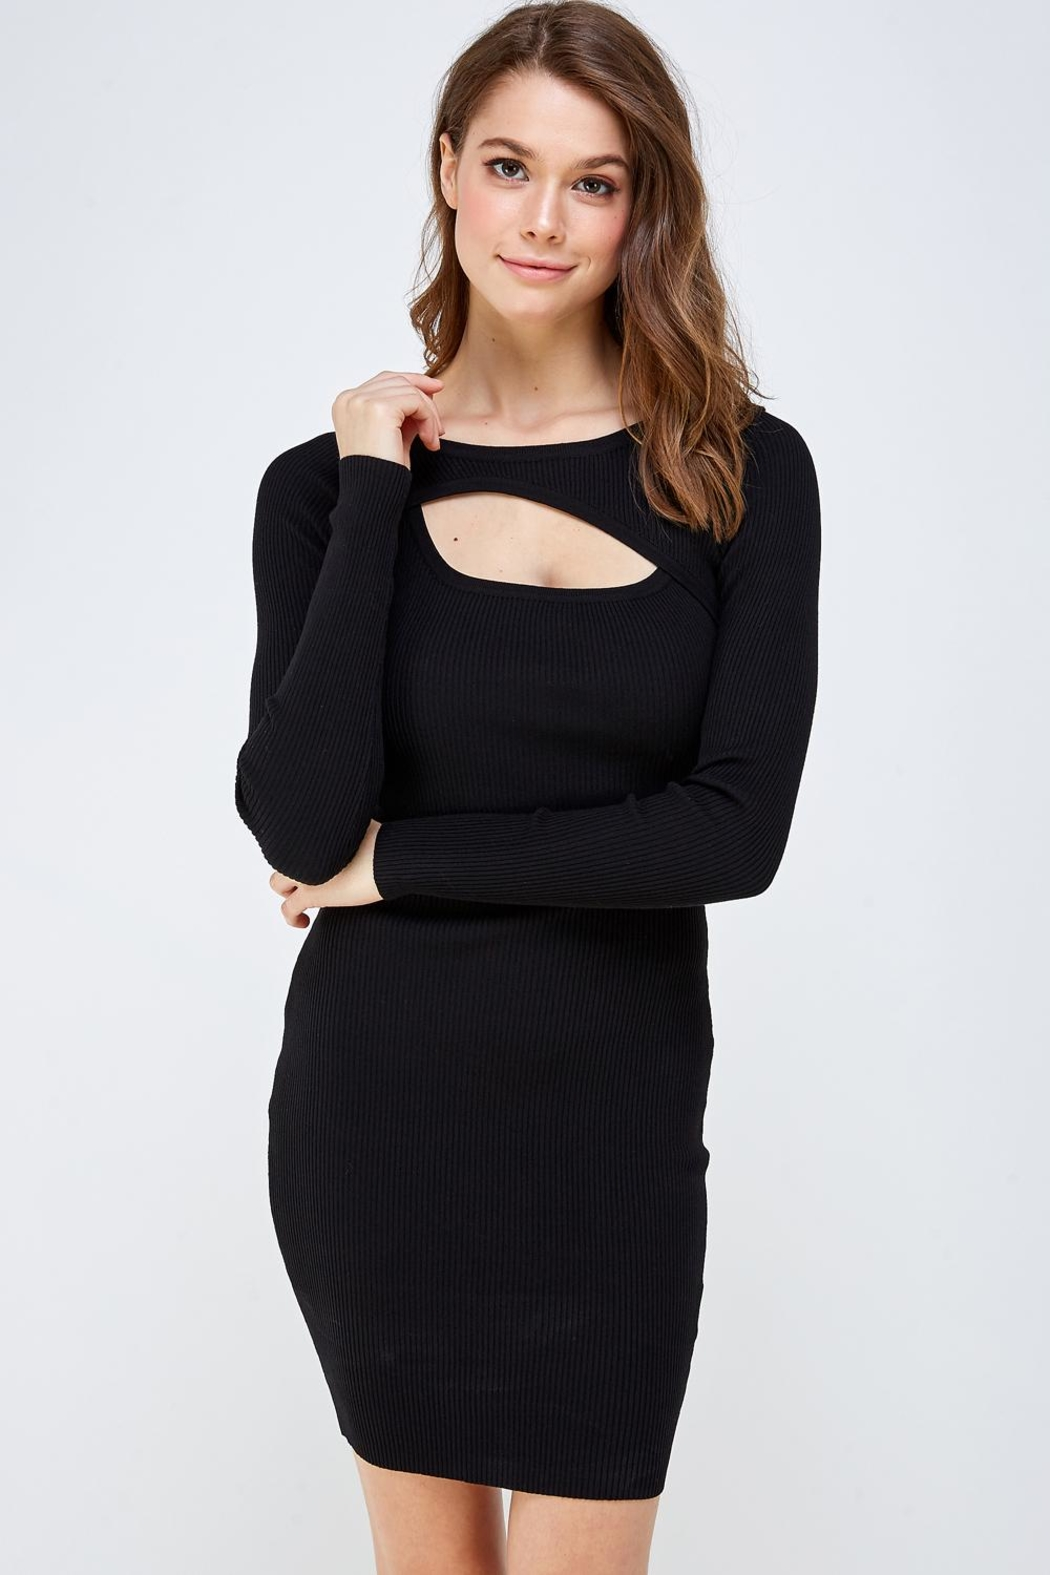 hera collection Keyhole Mini Dress - Main Image